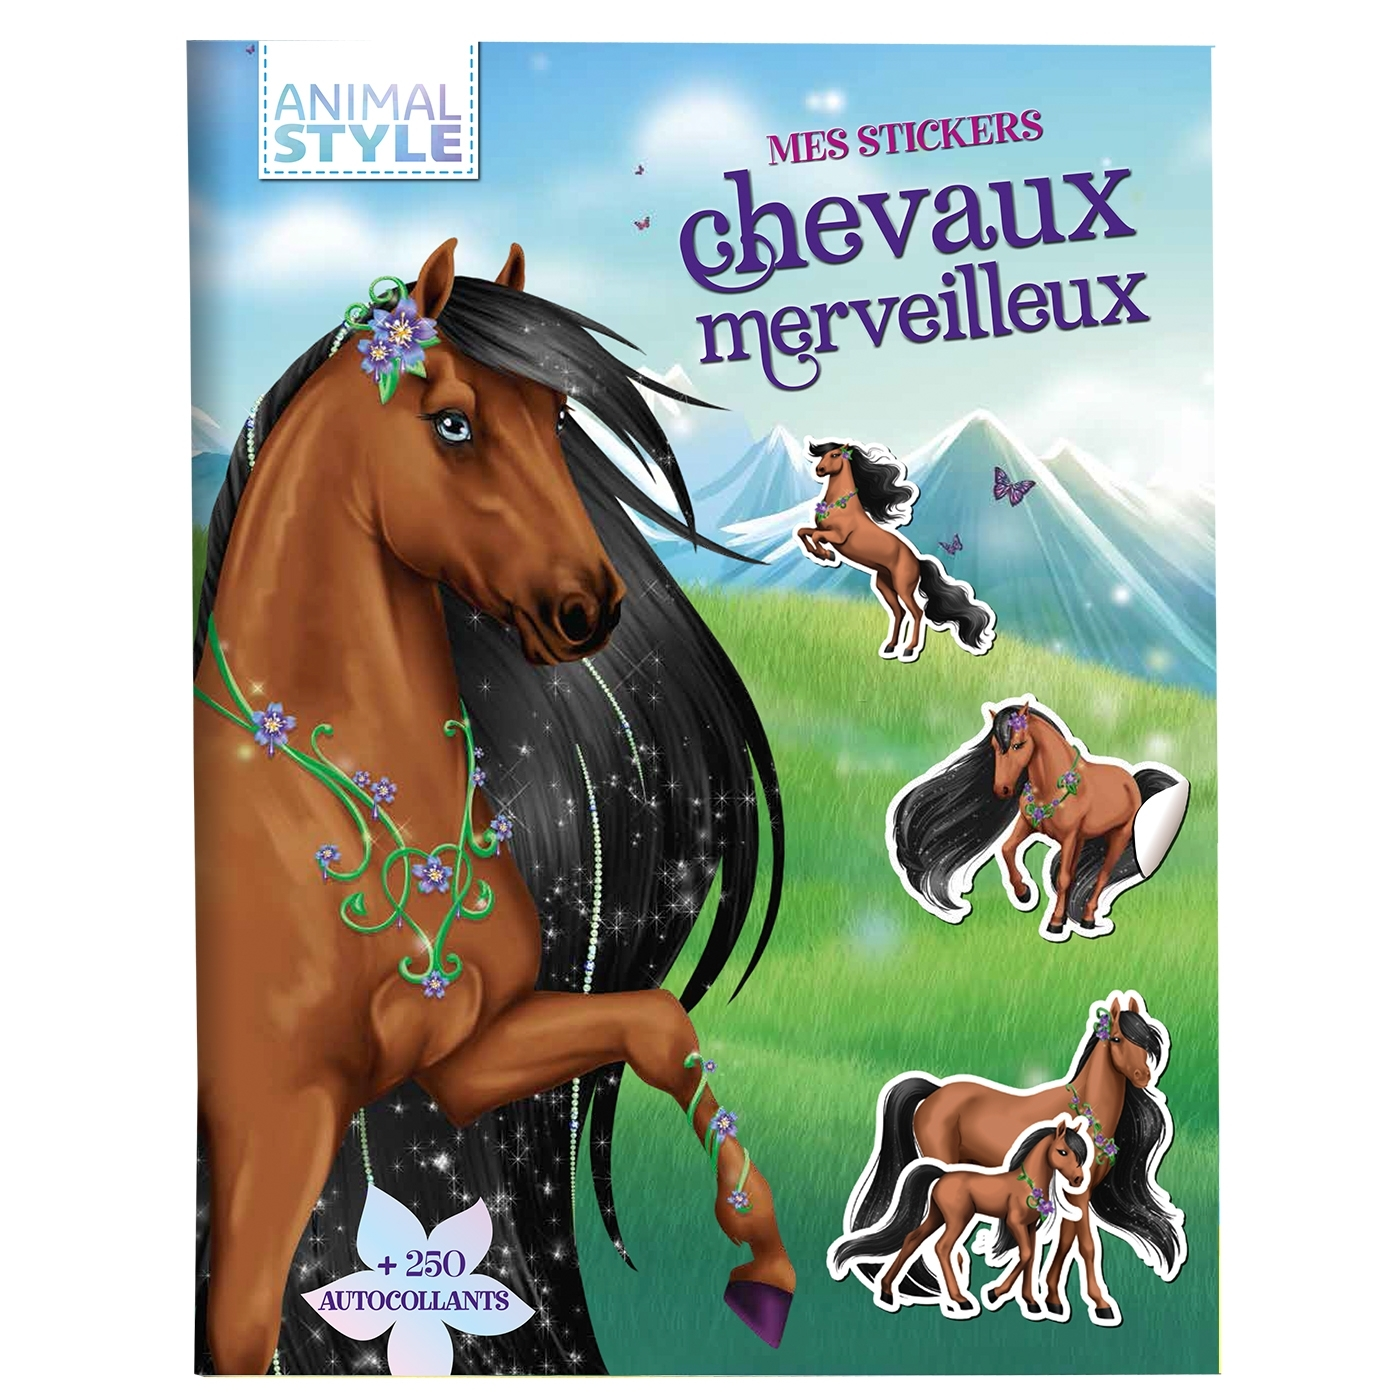 ANIMAL STYLE - MES STICKERS CHEVAUX MERVEILLEUX